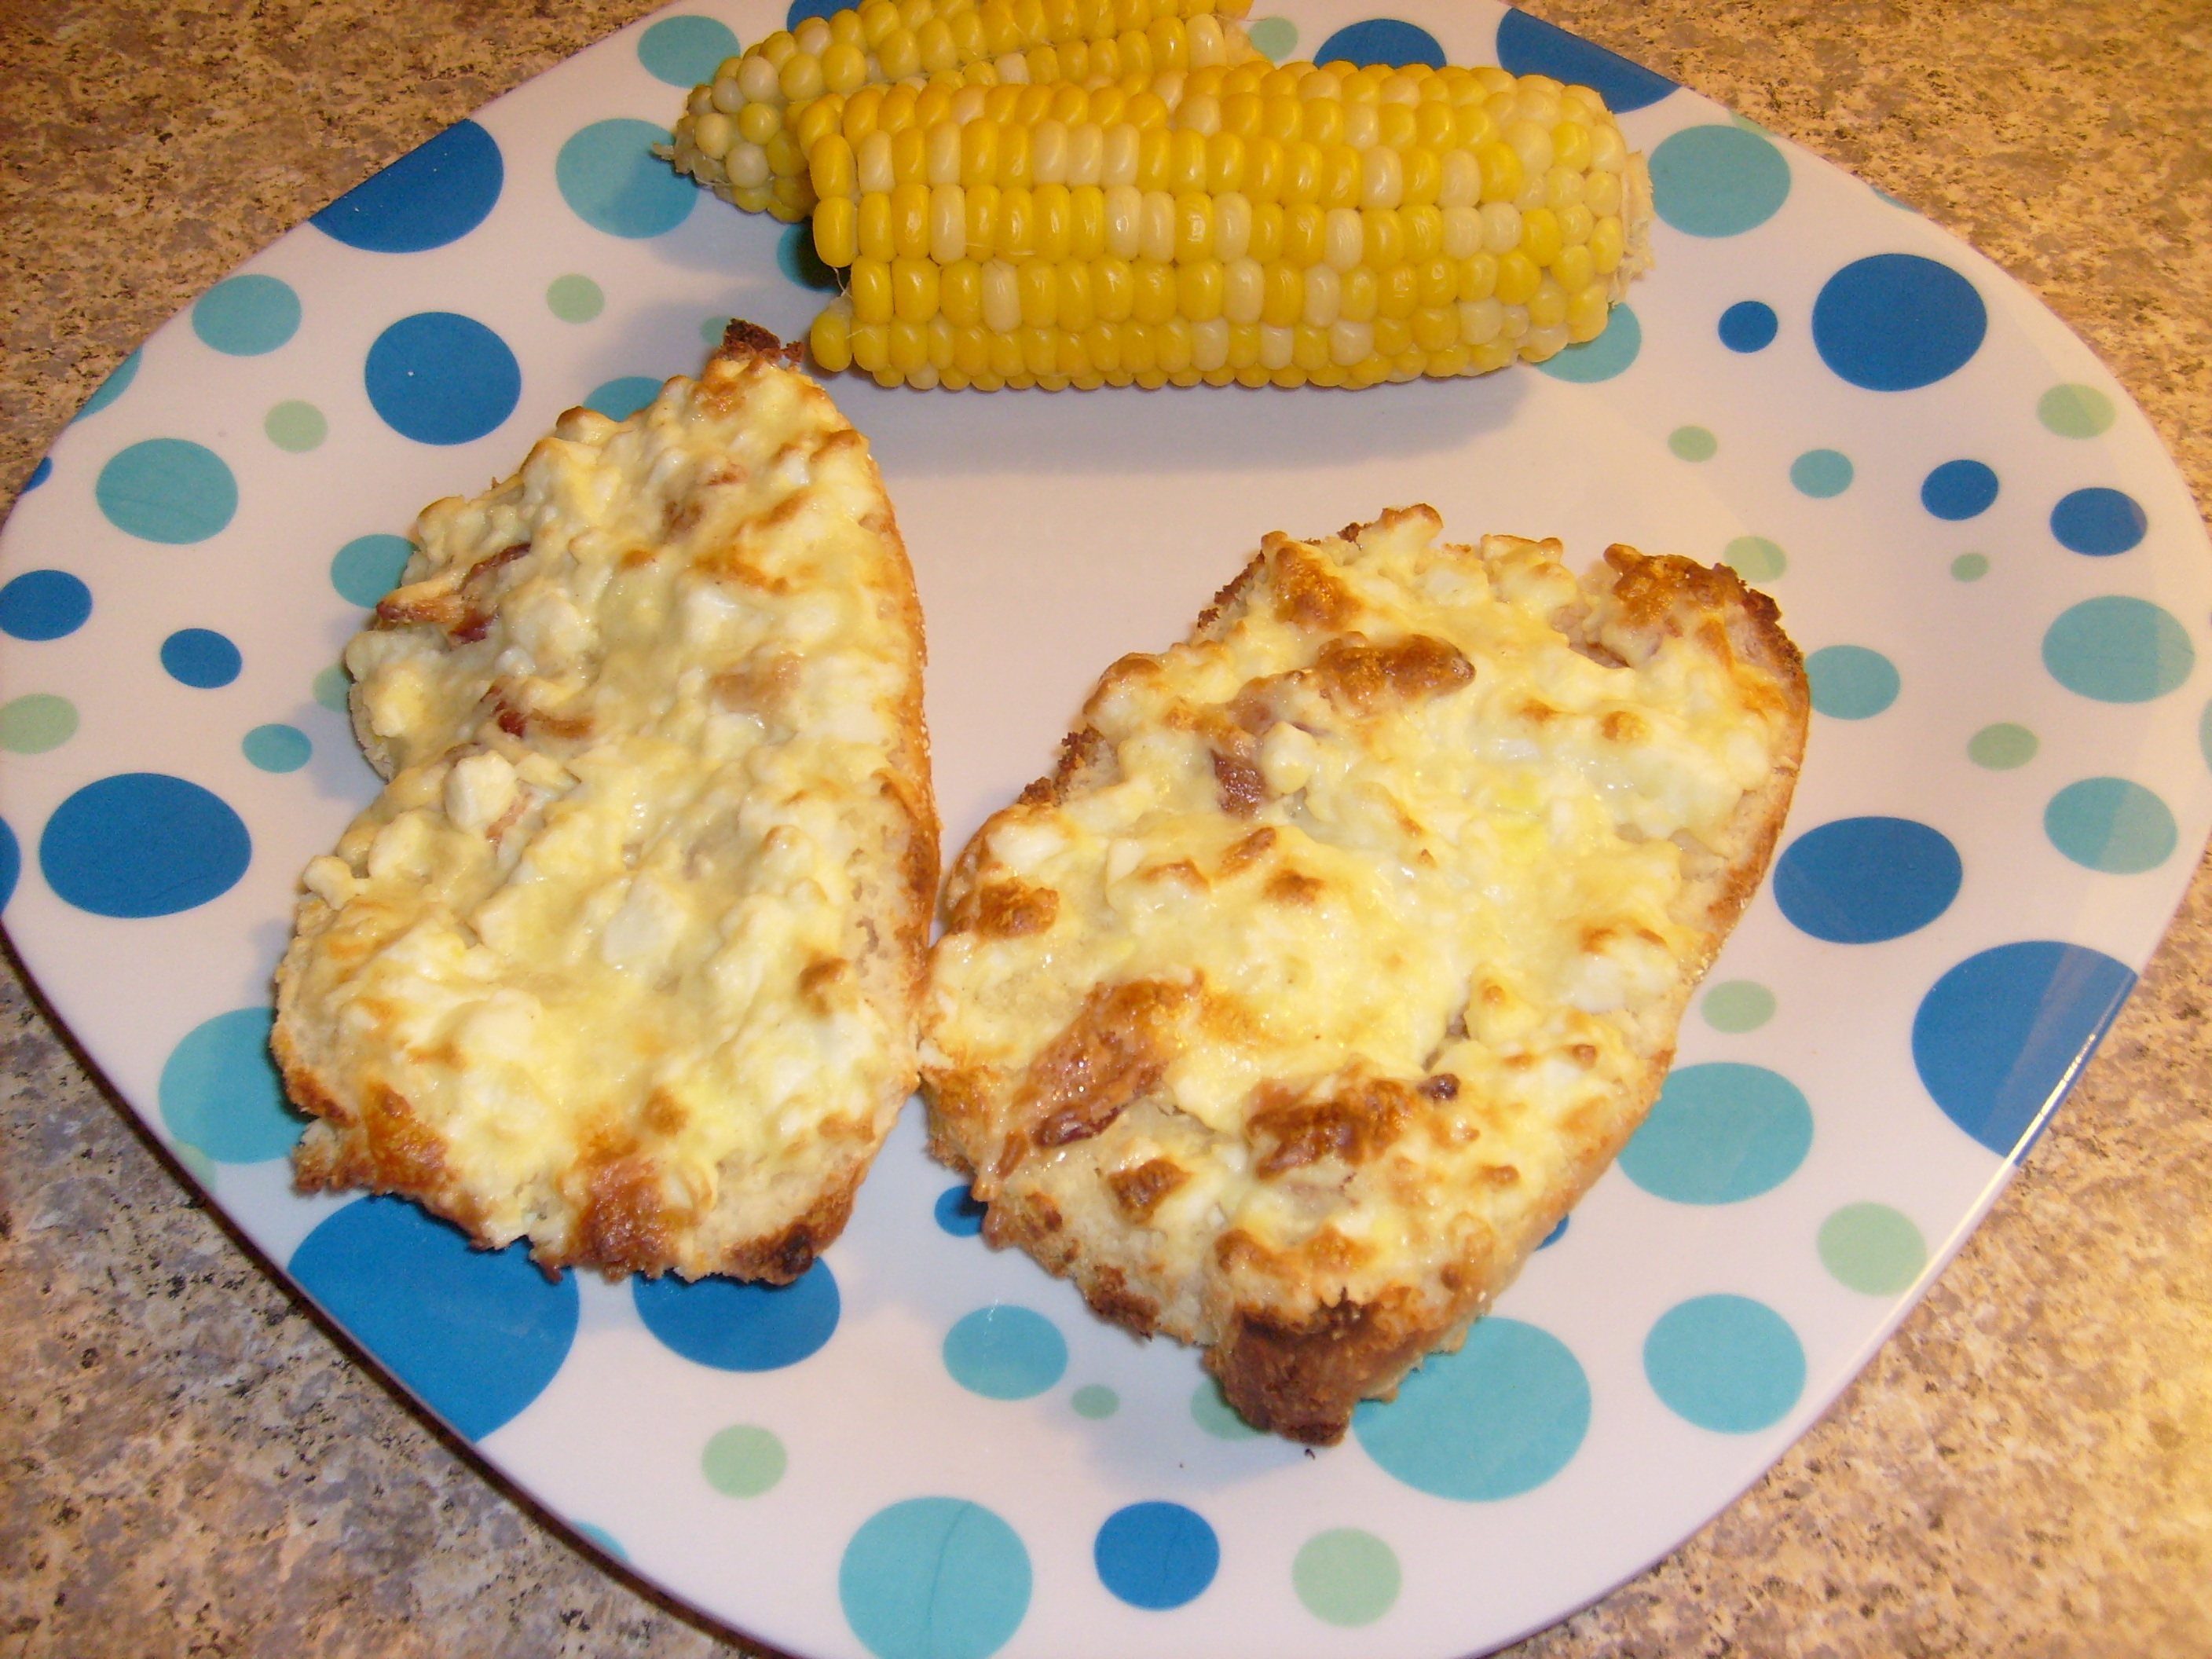 Pioneer Woman's Make-Ahead Muffin Melts